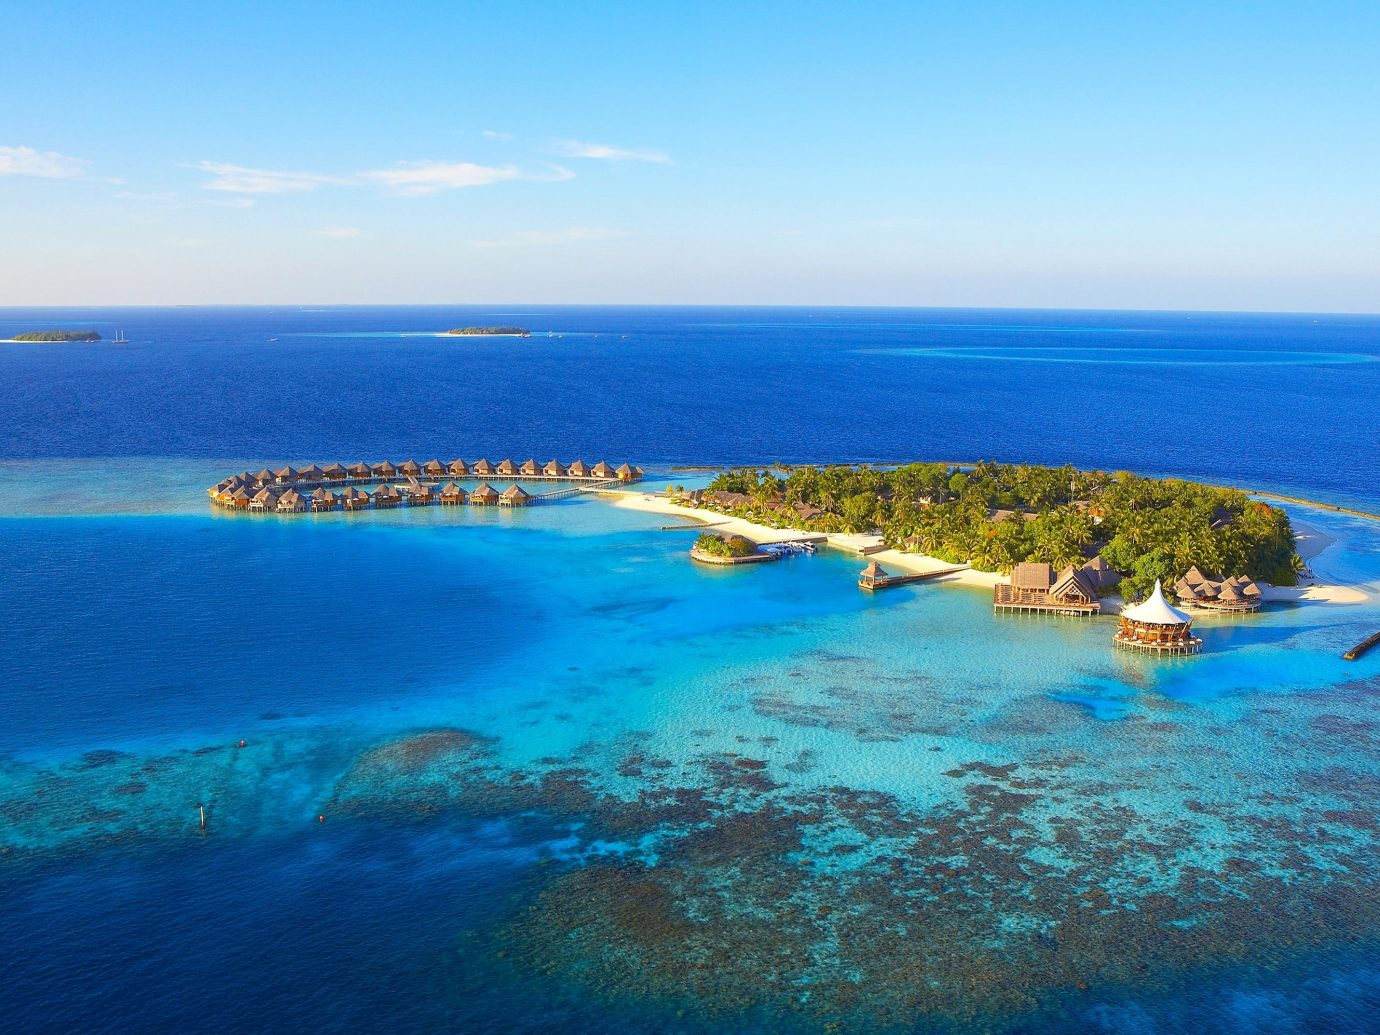 Hotels Trip Ideas water sky Ocean reef blue Nature outdoor geographical feature landform Sea Boat archipelago horizon Coast islet Beach caribbean shore vacation bay Lagoon Island cape cove clear Resort atoll swimming distance